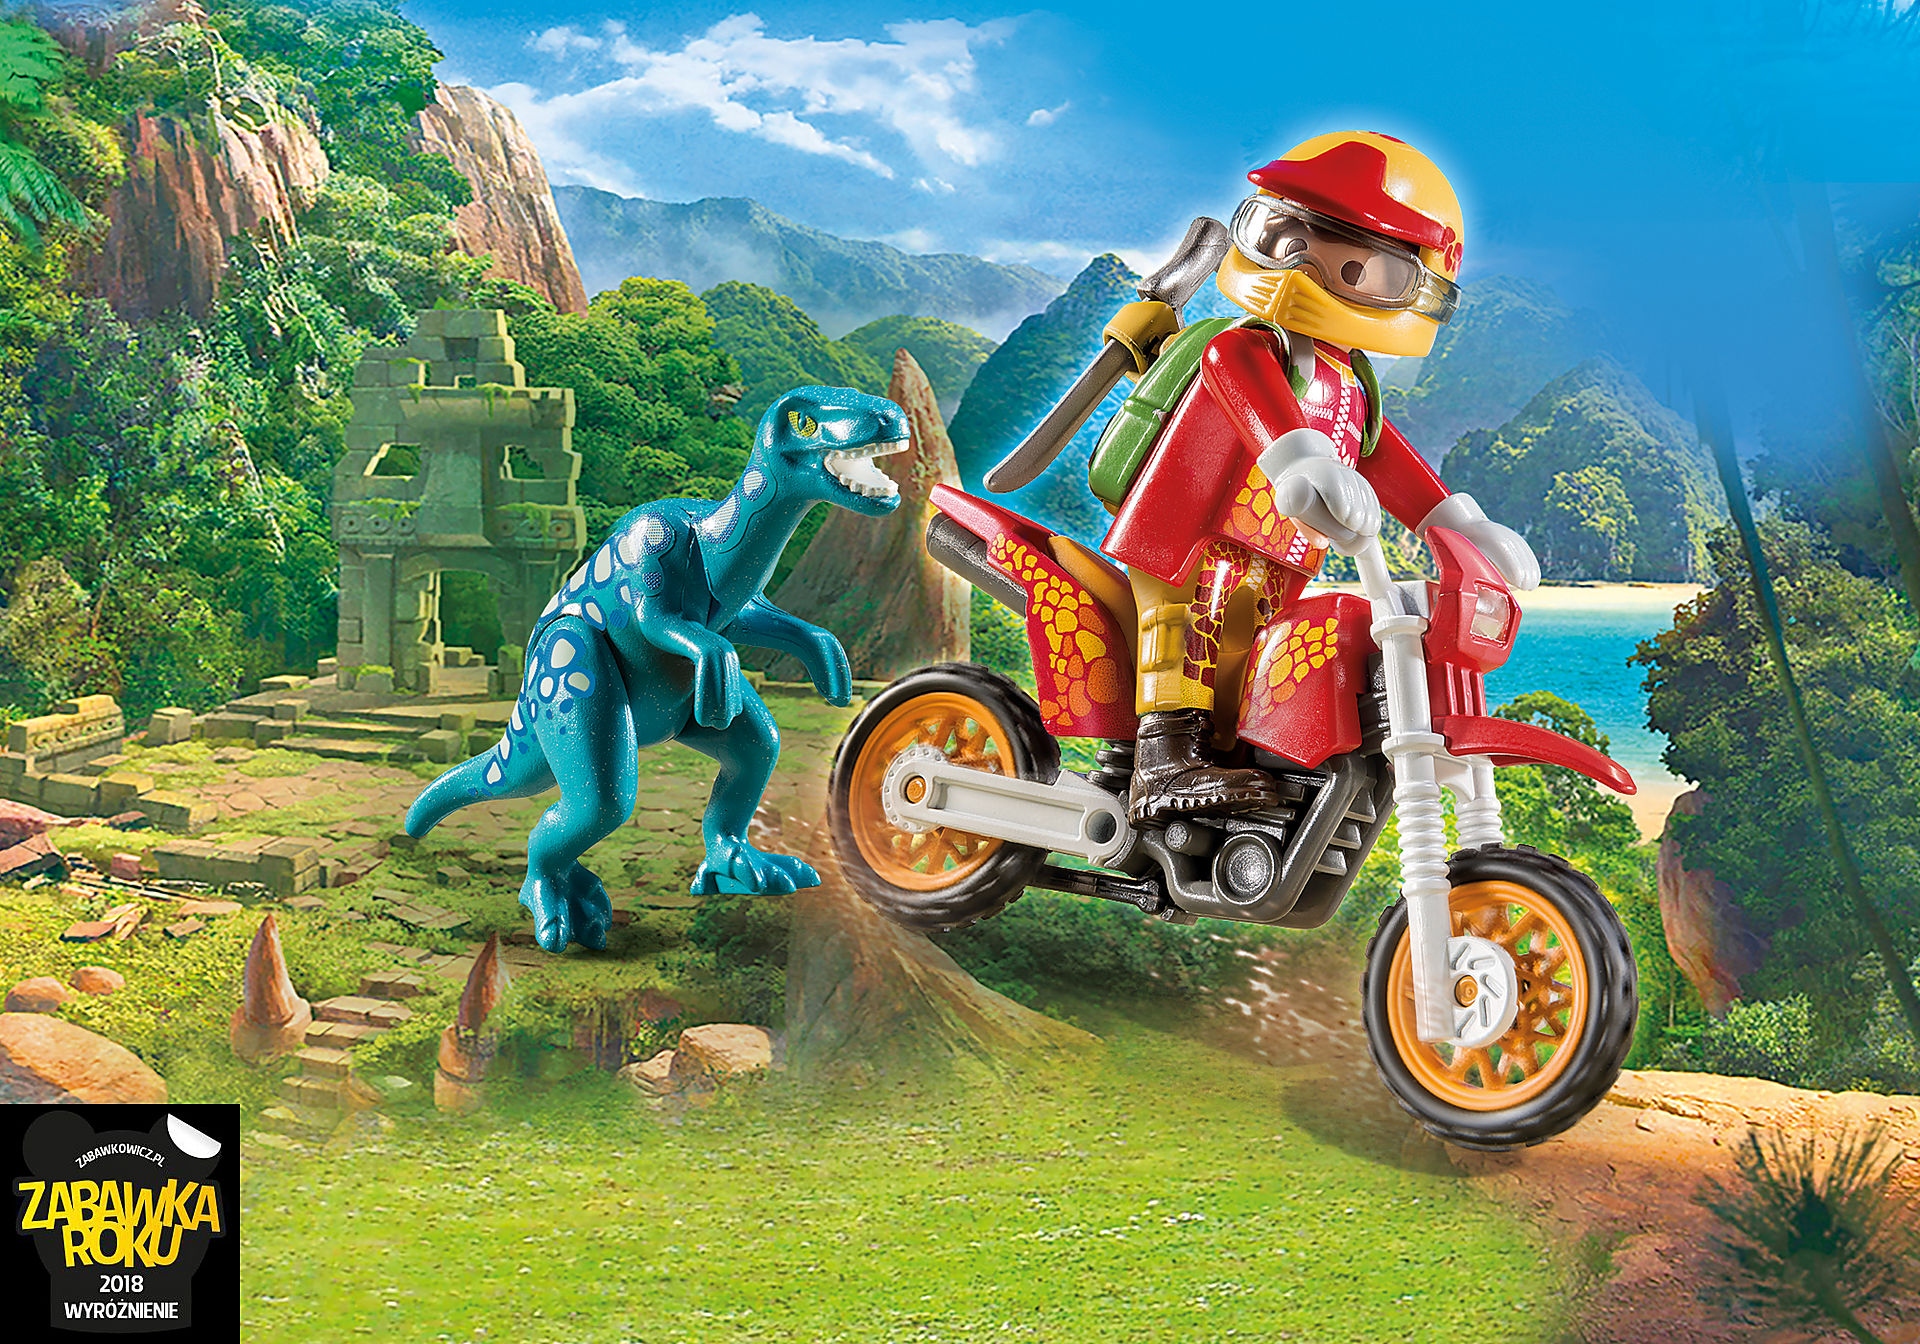 http://media.playmobil.com/i/playmobil/9431_product_detail/Rower motocrossowy z raptorem